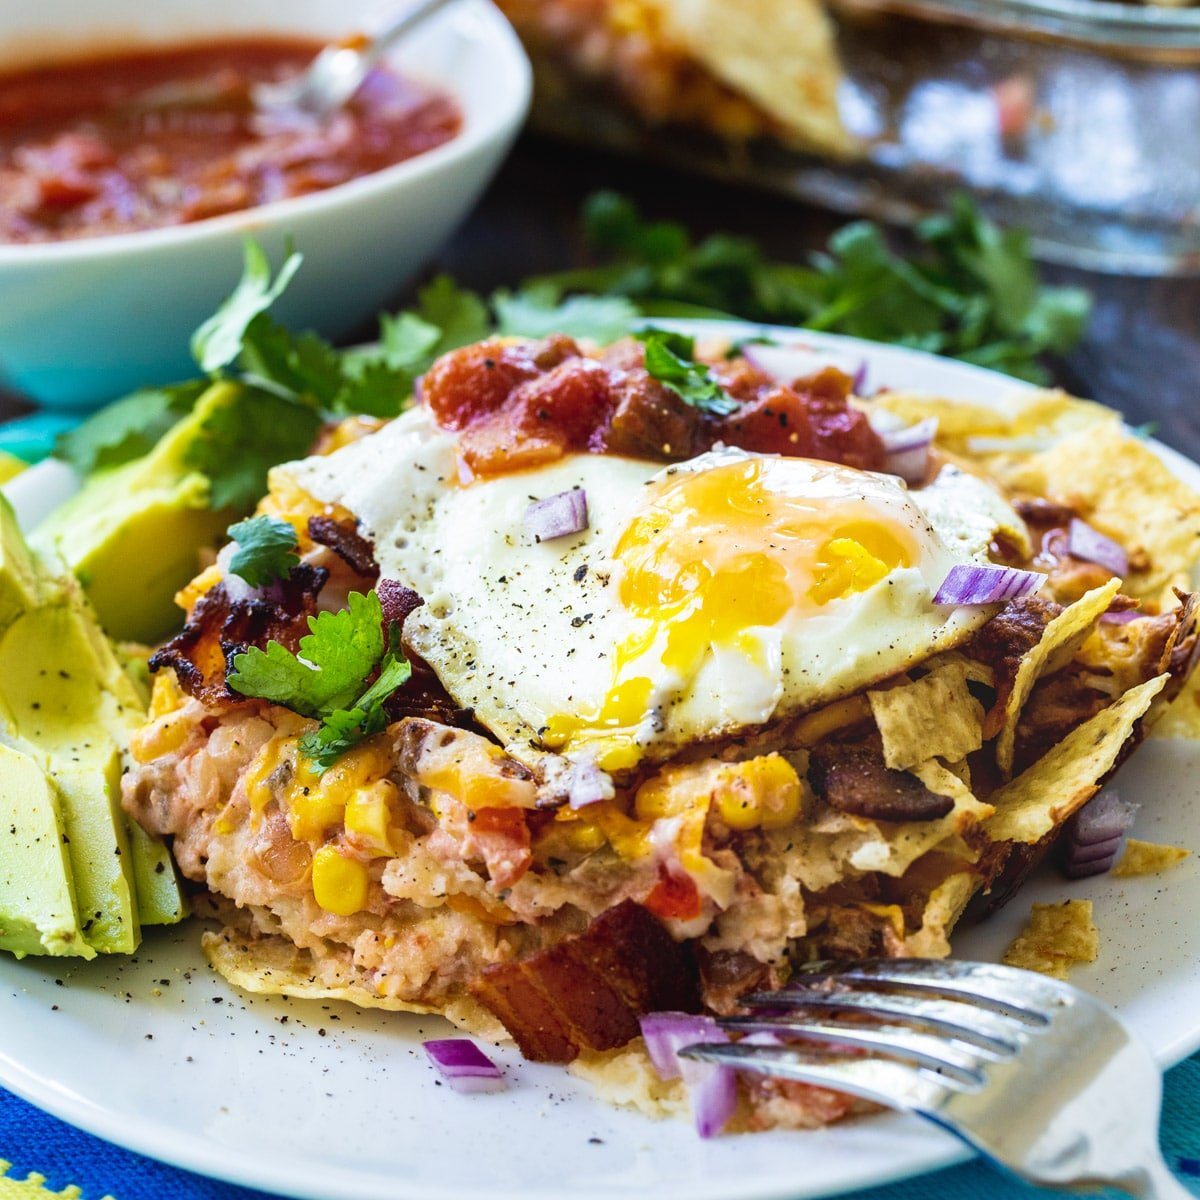 Bacon and Egg Chilaquiles on a plate.